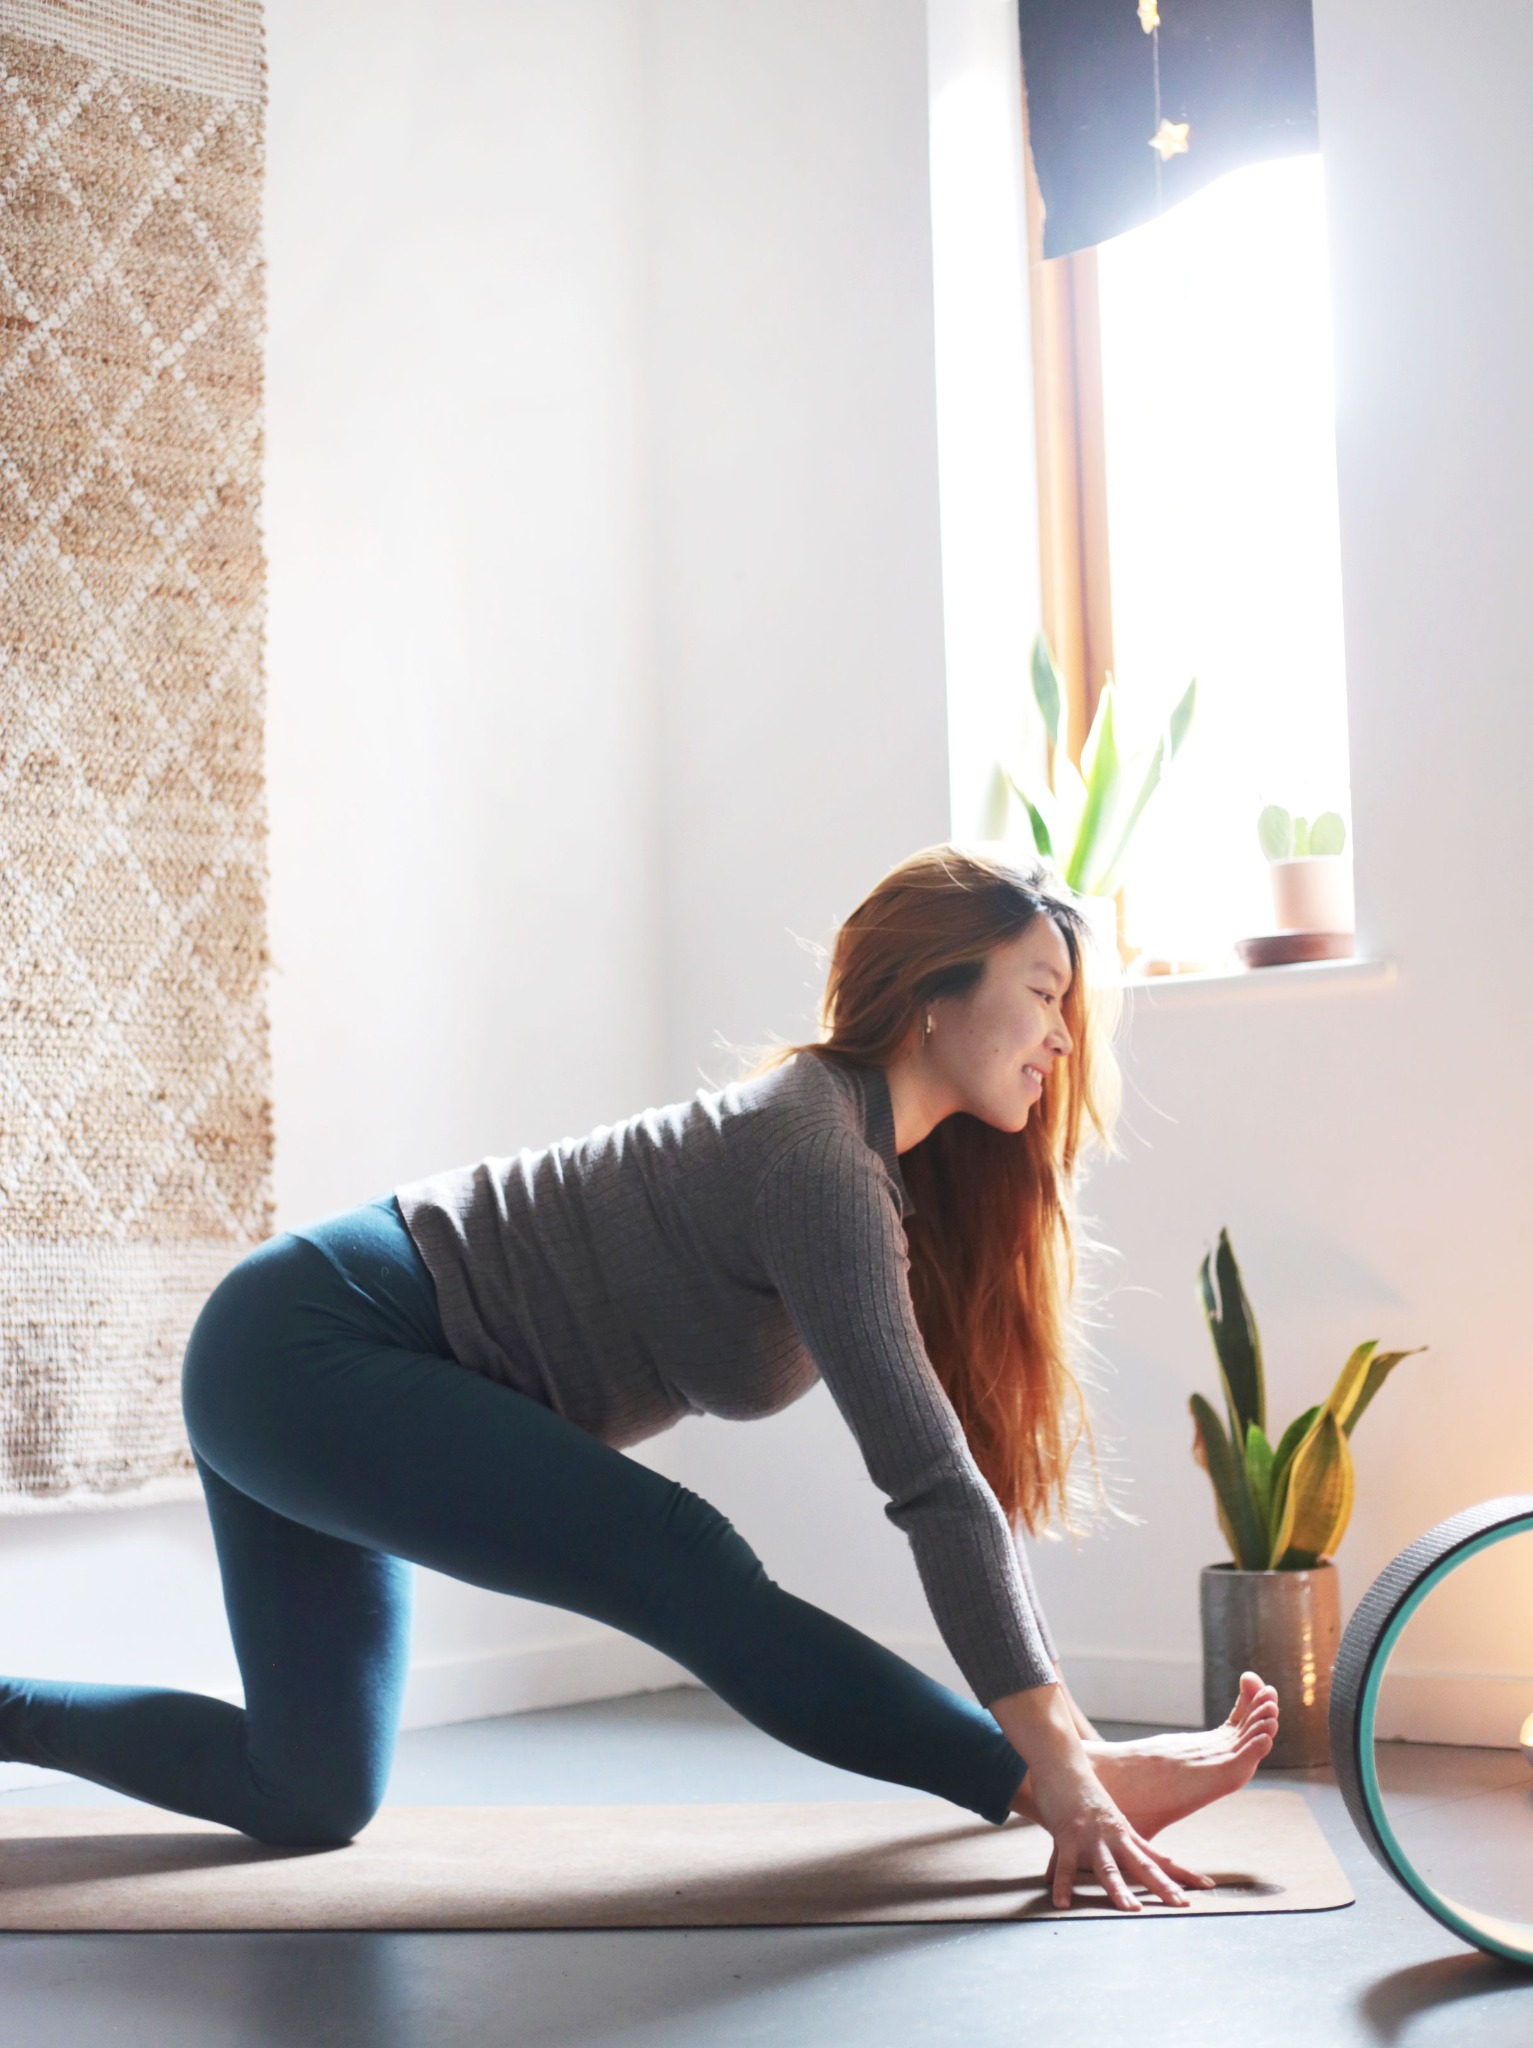 Yoga & Pregnancy: How to adapt your practice when pregnant